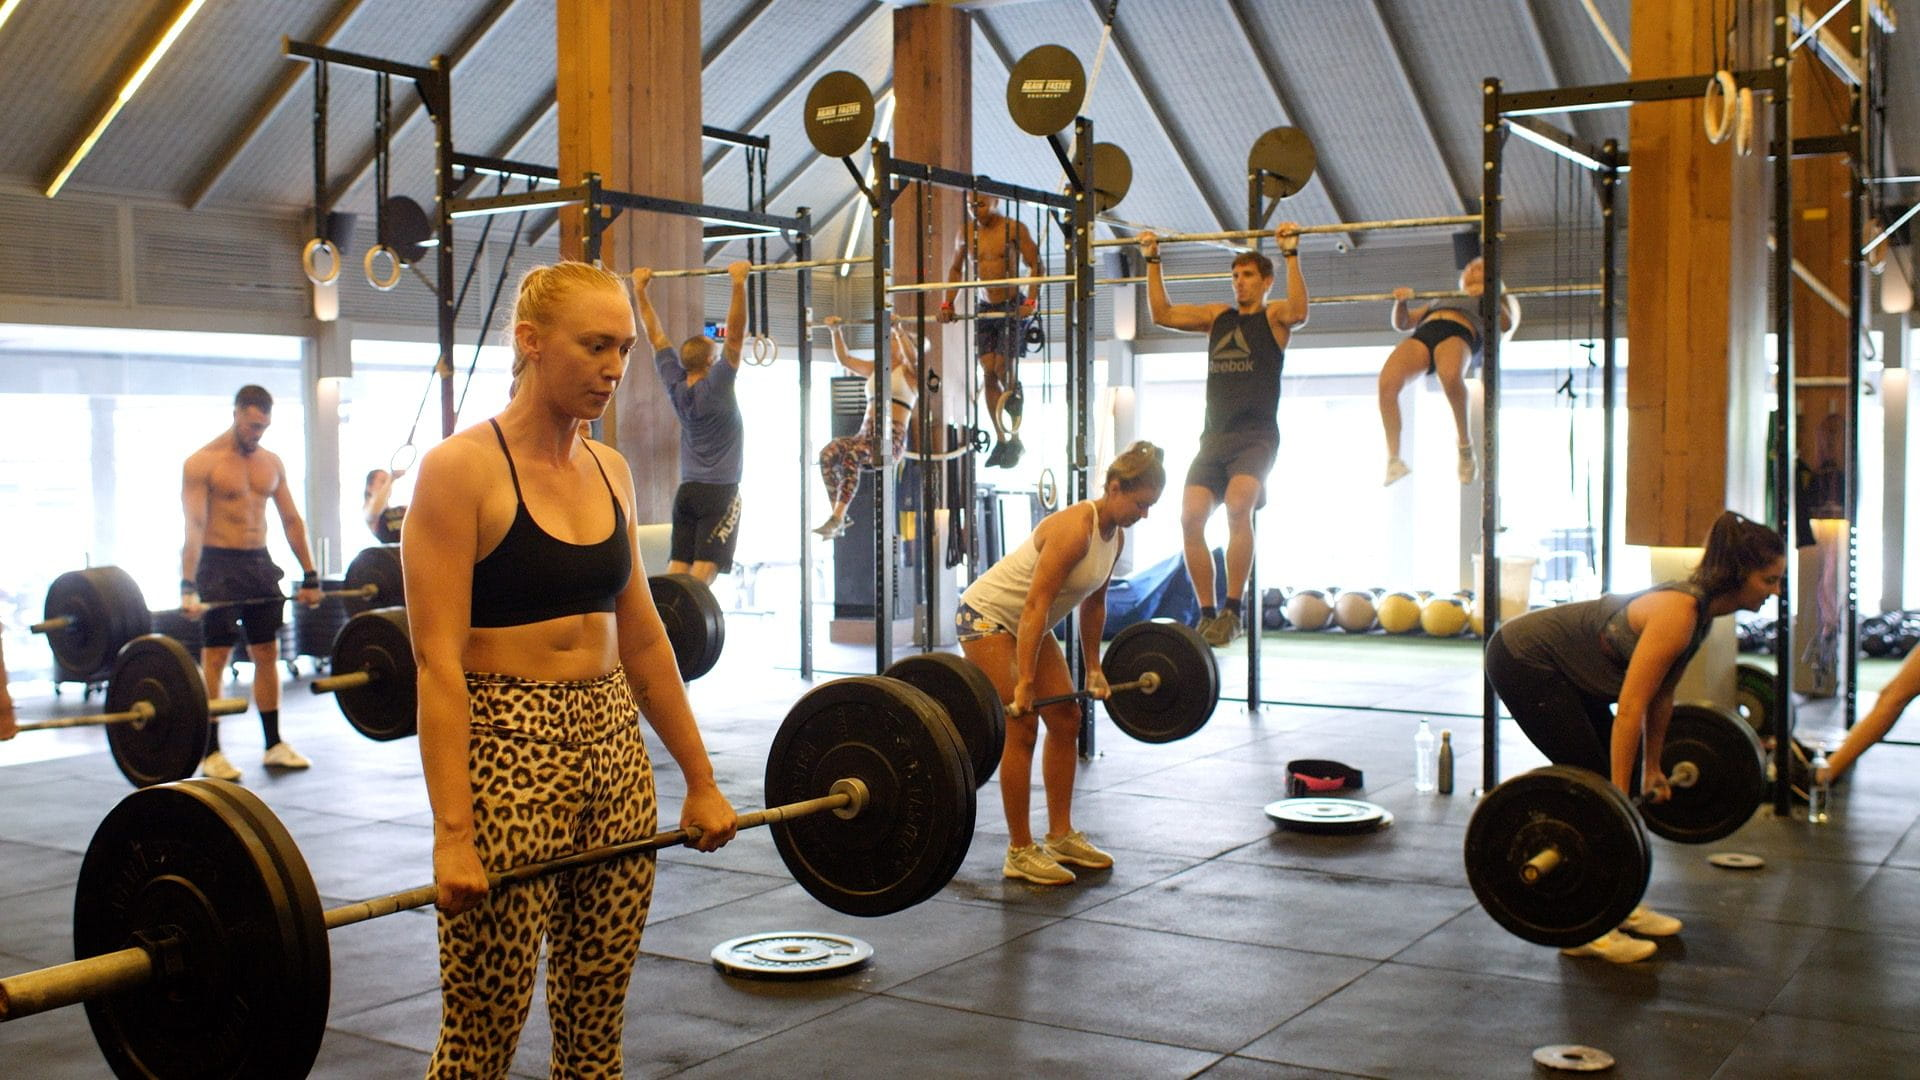 VIDEO – Out of The Box: CrossFit in Bali, Indonesia